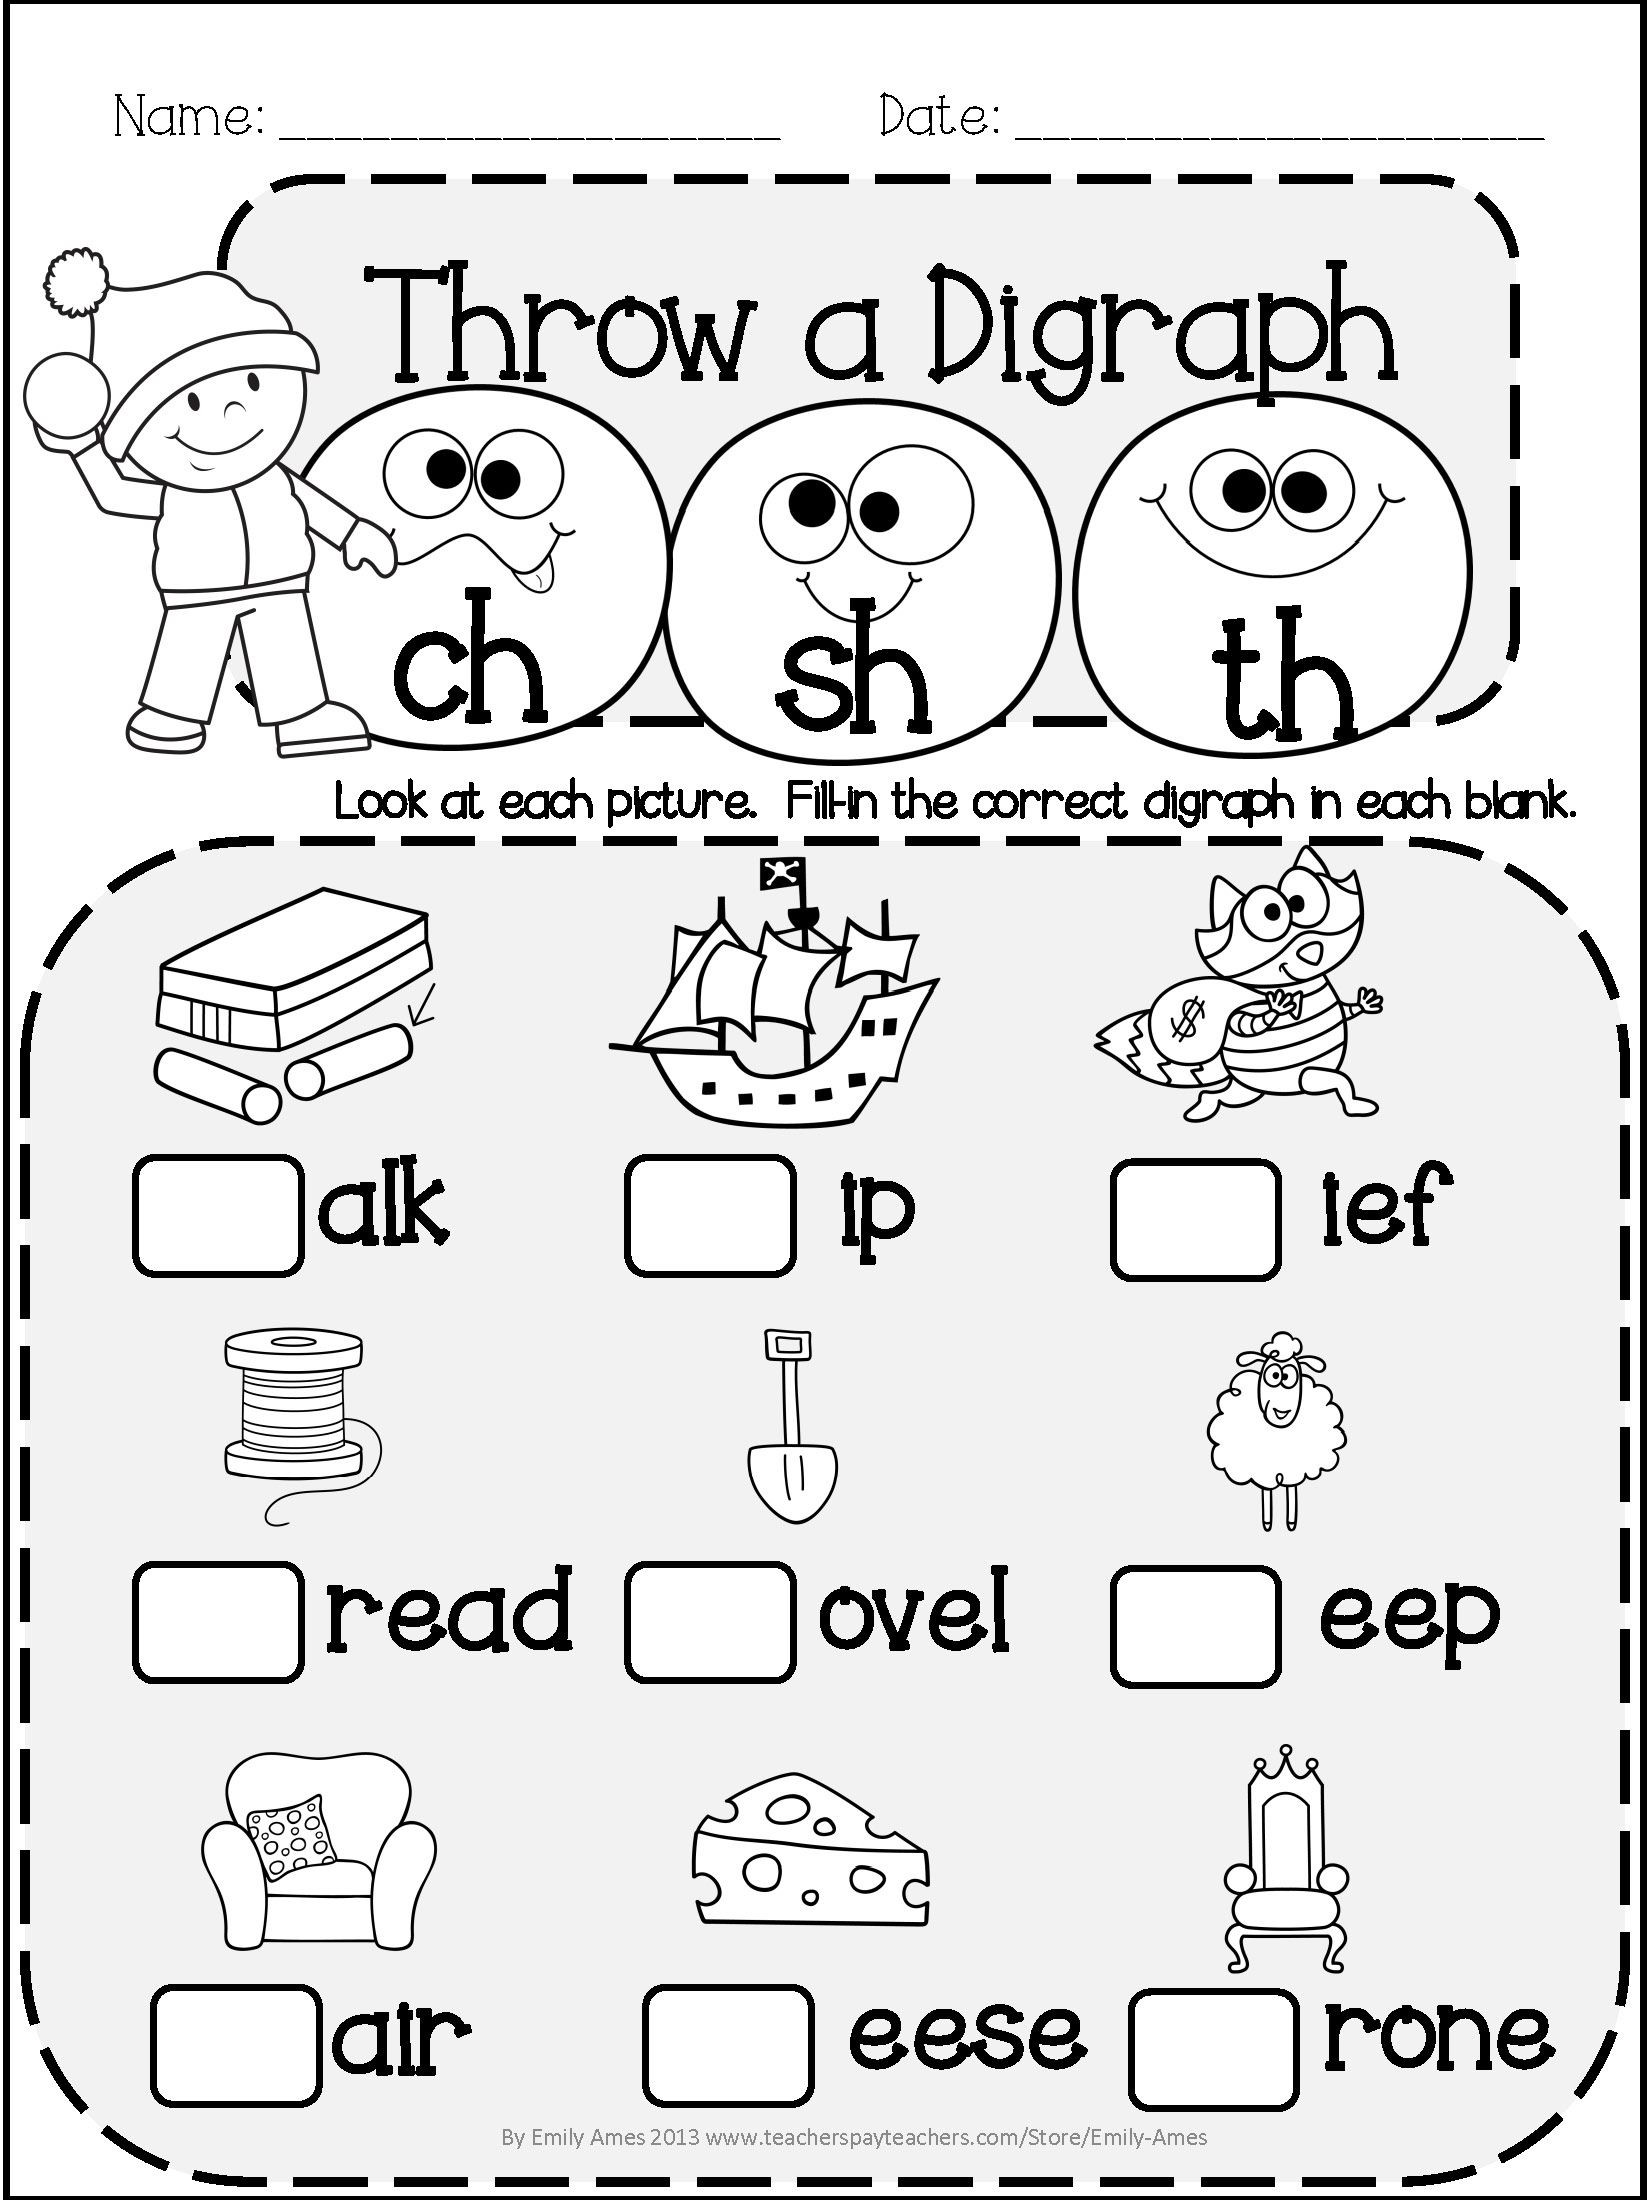 Ou Ow Worksheets 2nd Grade Maggie Clement Maggiecle Ou Ow Phonics Worksheets